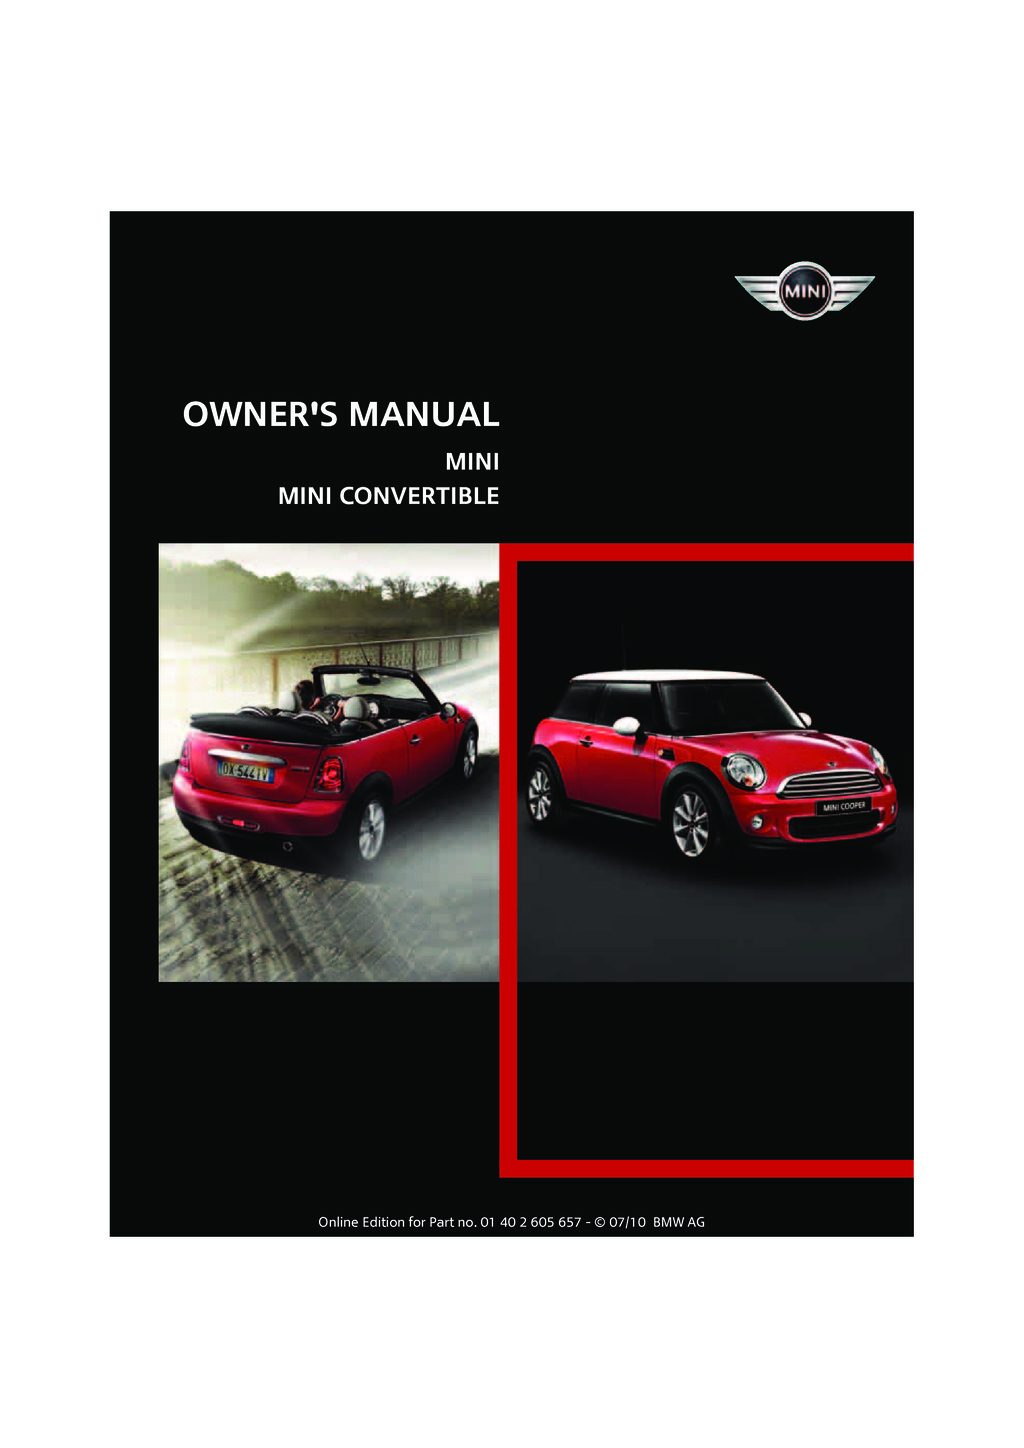 2011 Mini Cooper Convertible owners manual